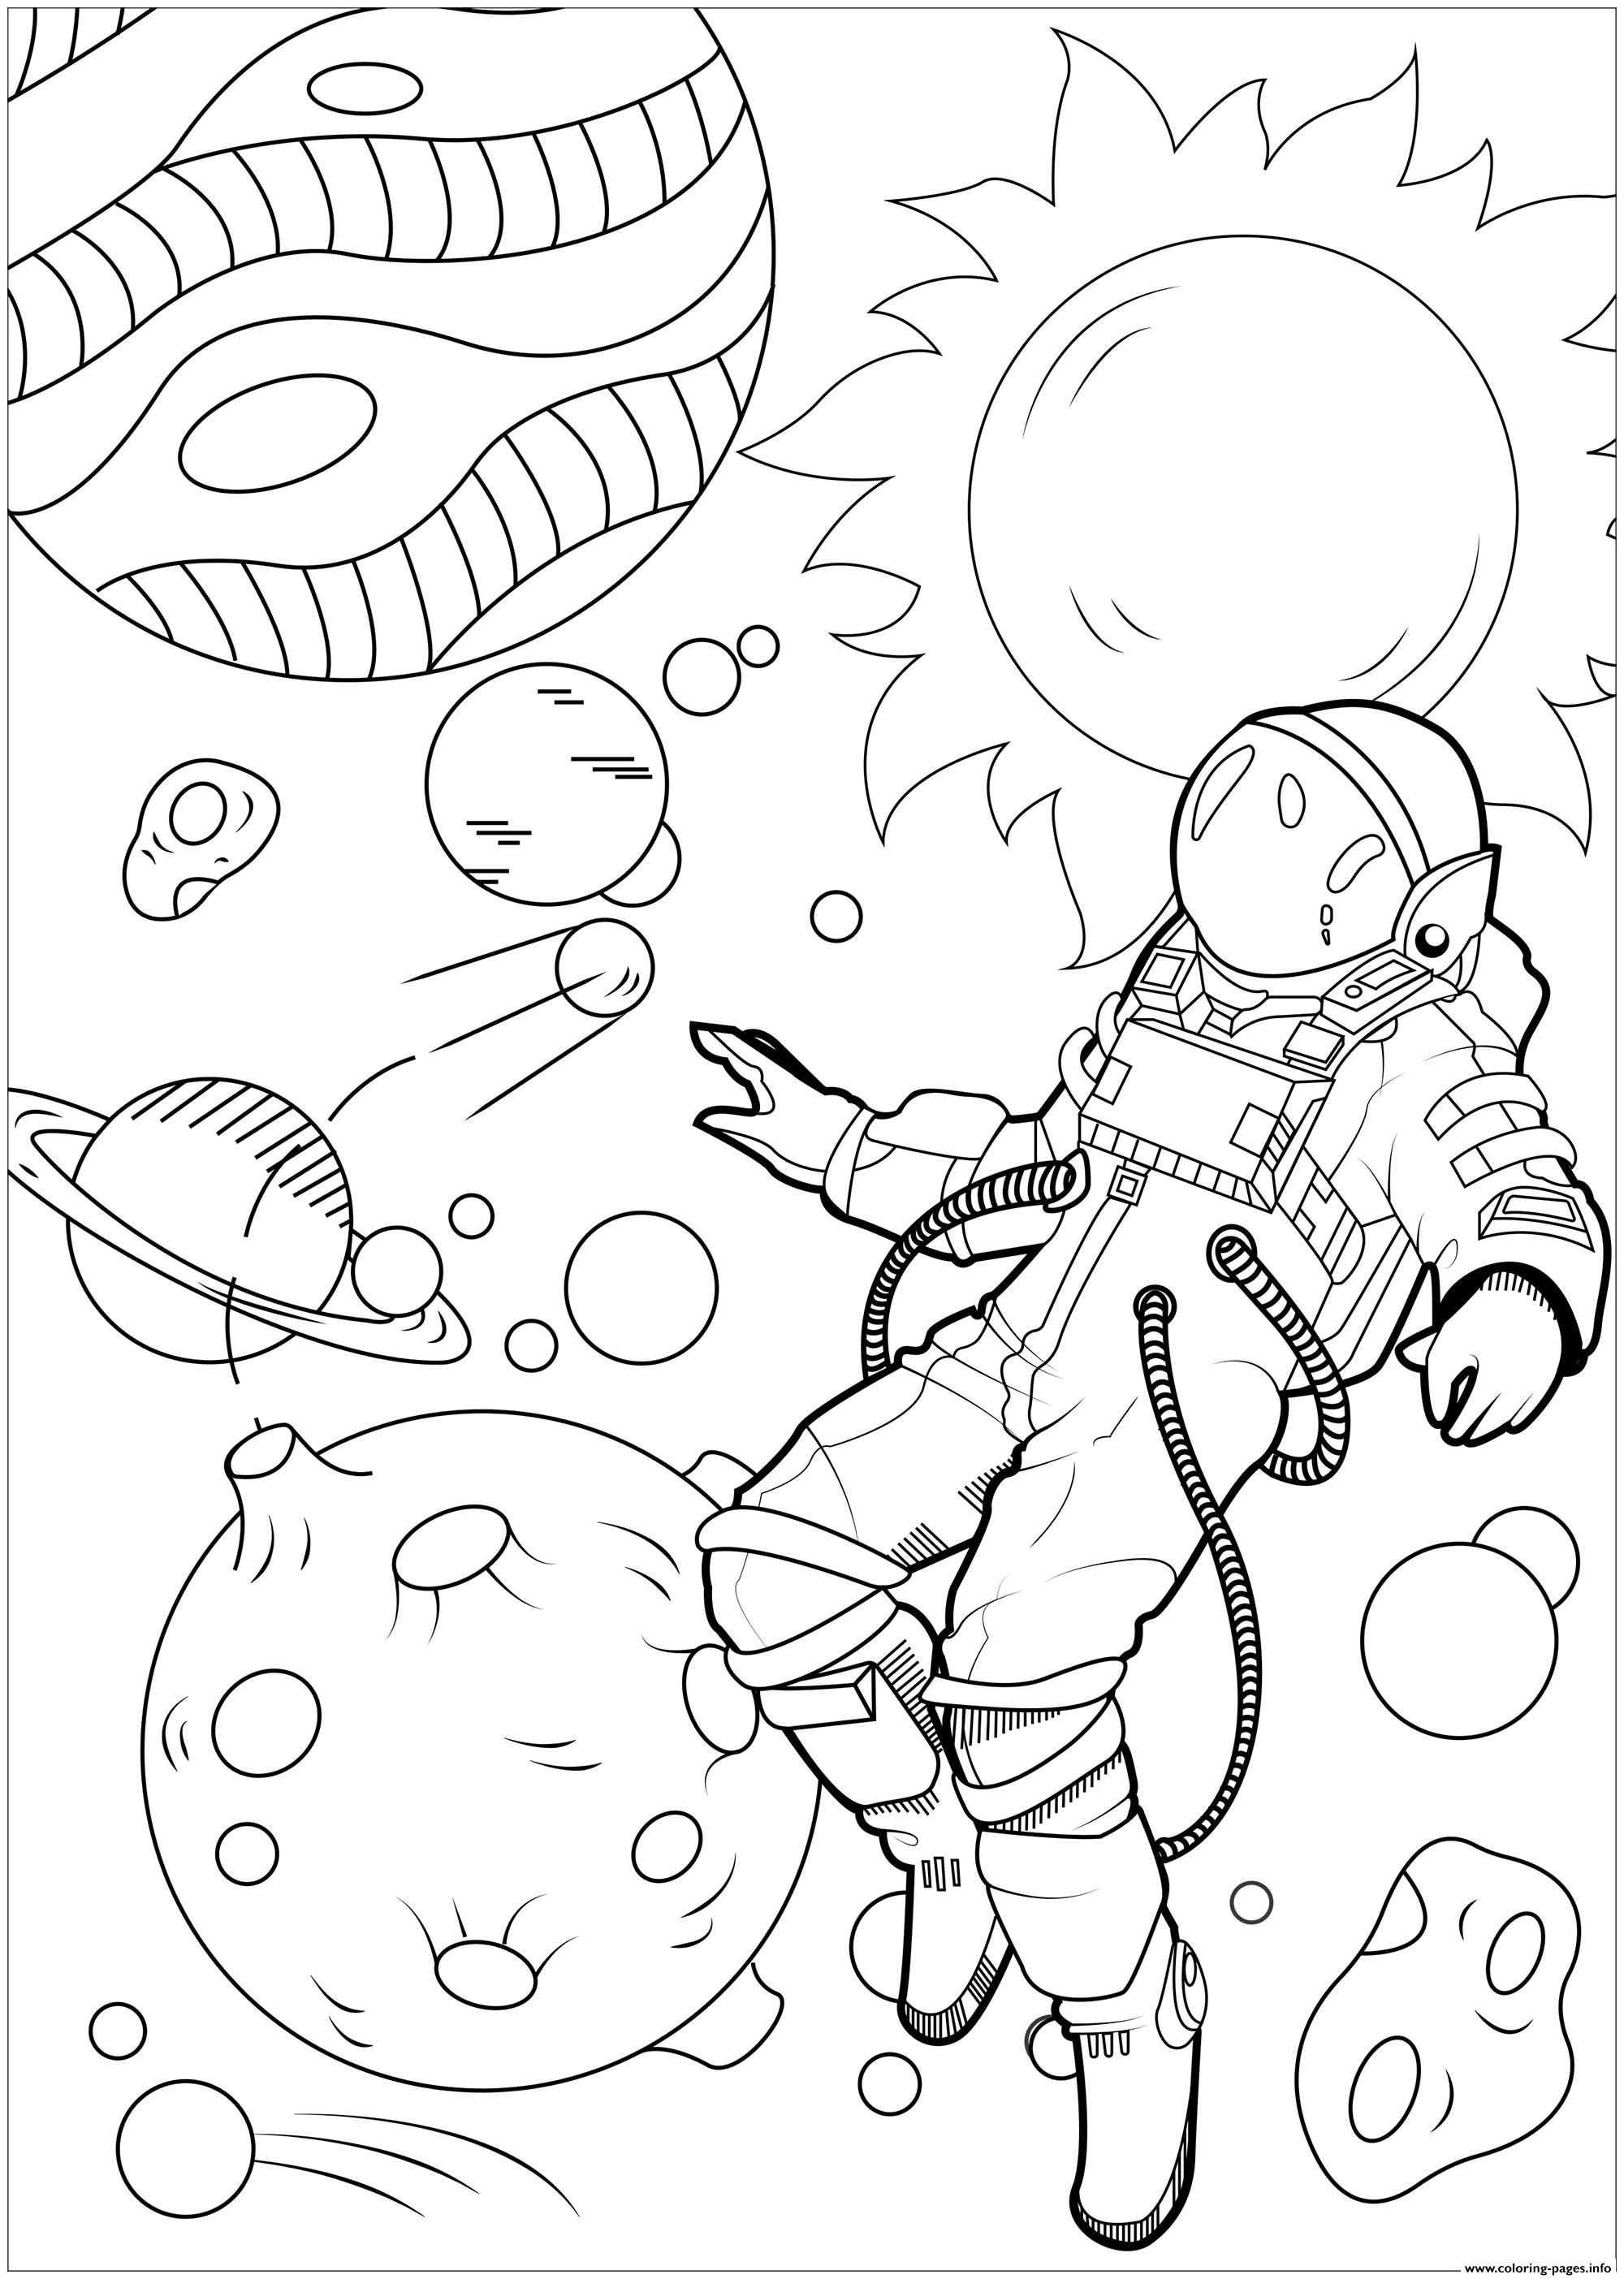 Print Let Yourself Float In The Galaxy Coloring Pages In 2021 Moon Coloring Pages Space Coloring Pages Free Coloring Pages